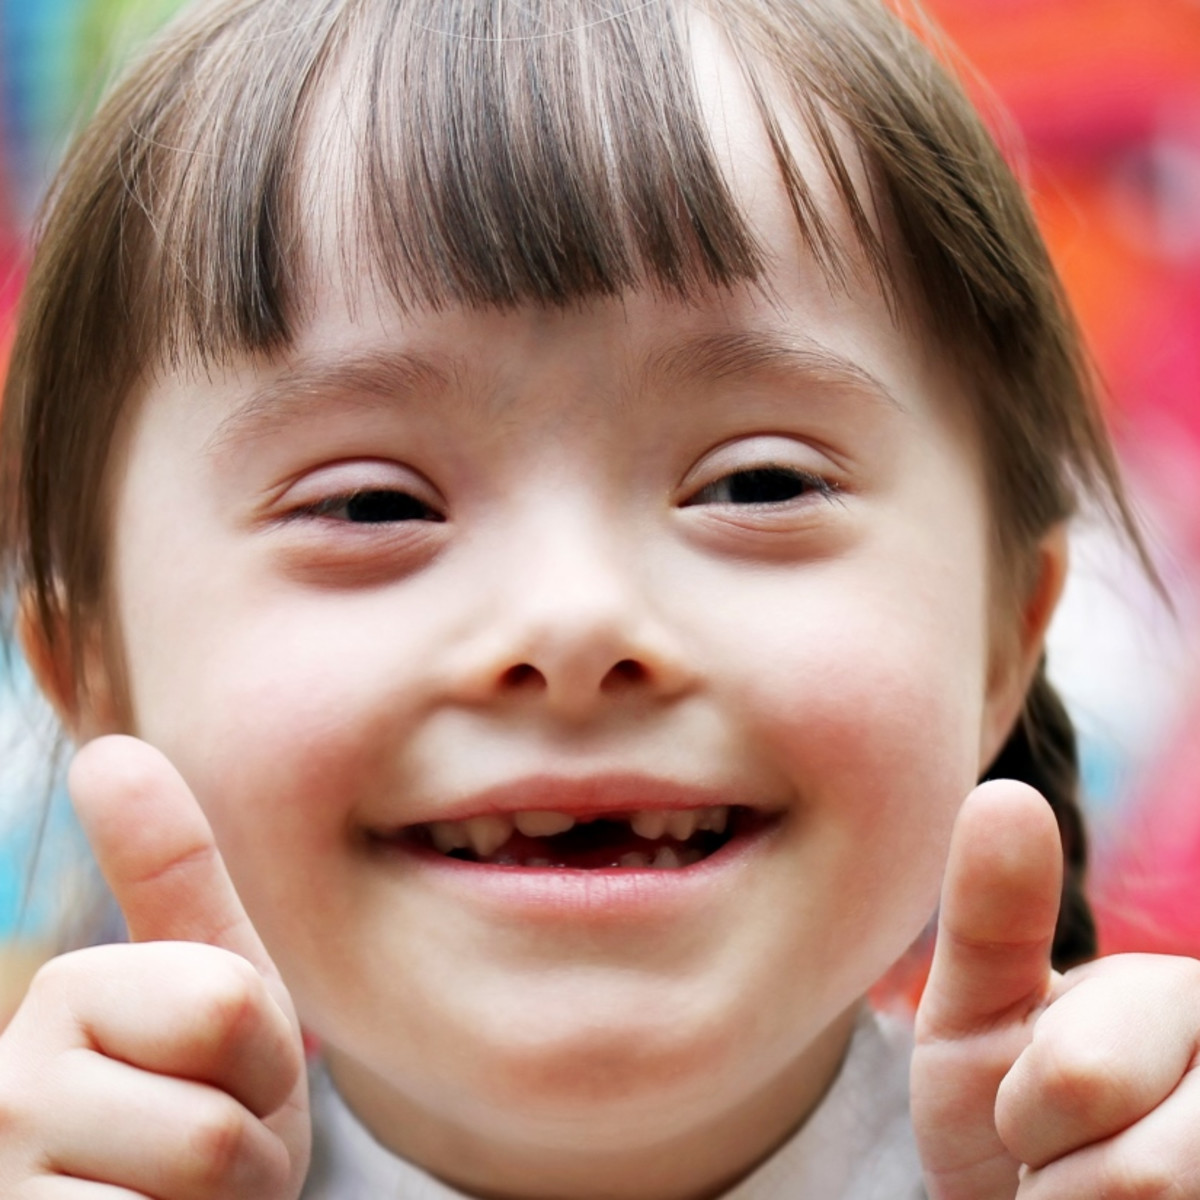 11 Facts About Down Syndrome Dosomething Org